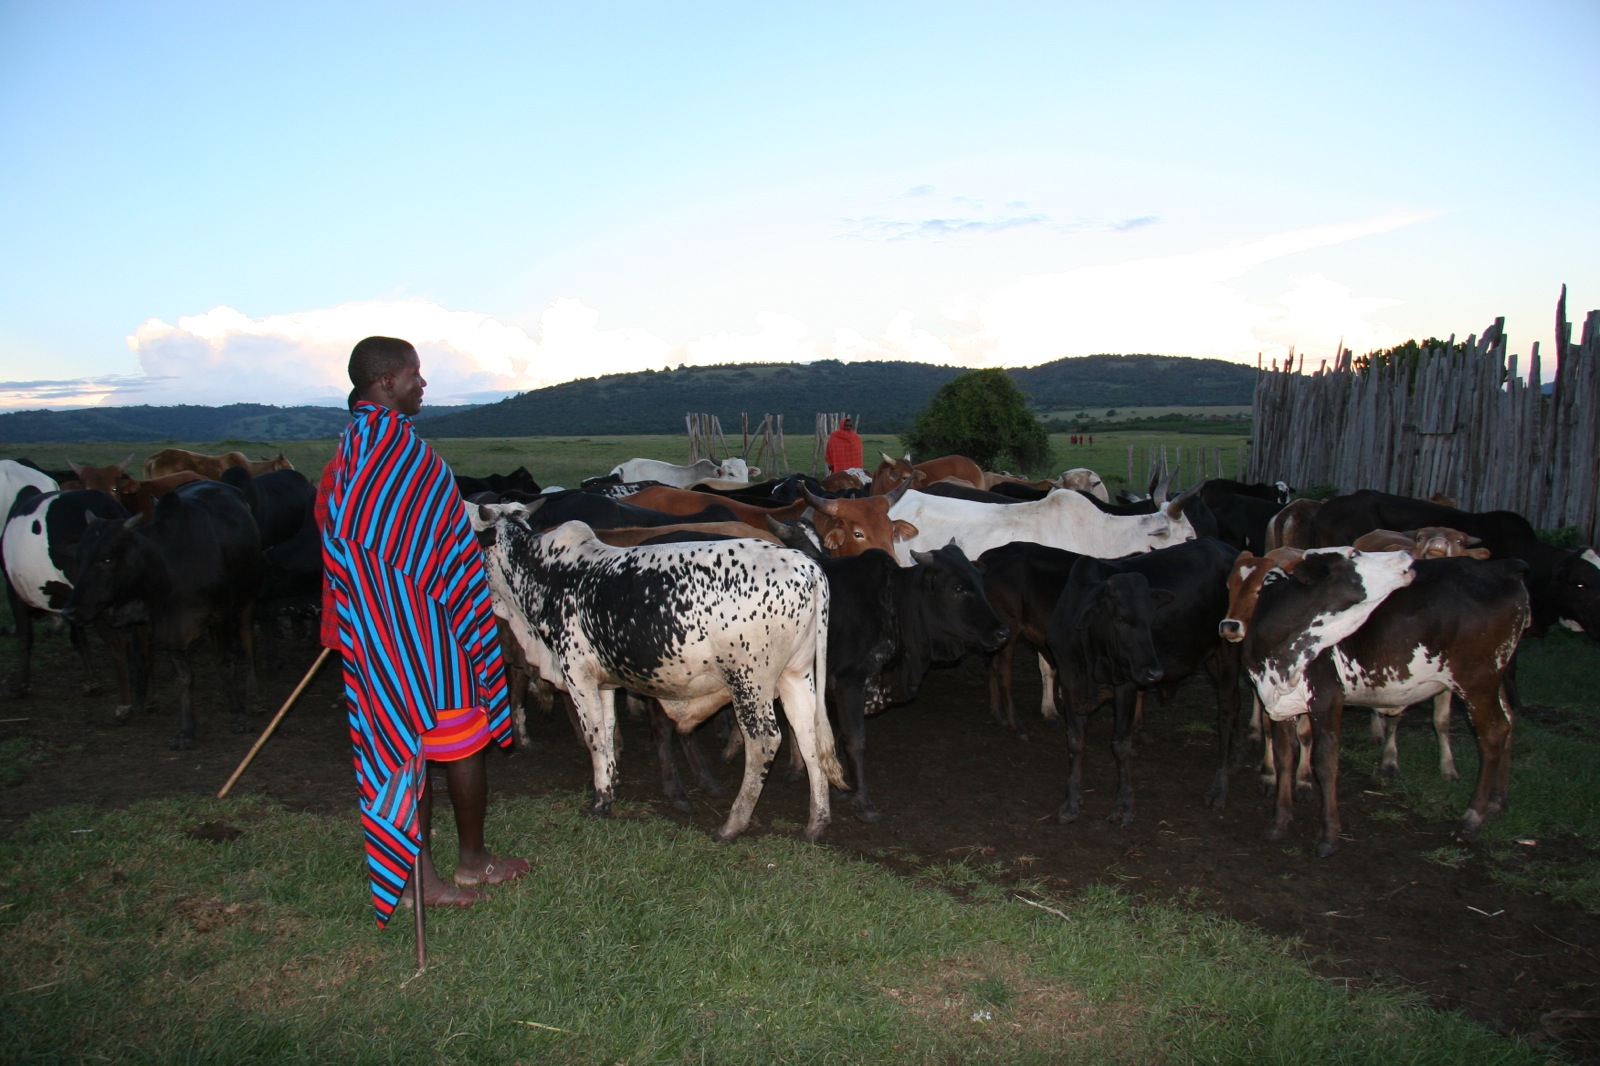 A Maasai man wearing a red and blue striped cloth tends to his cattle at dusk.